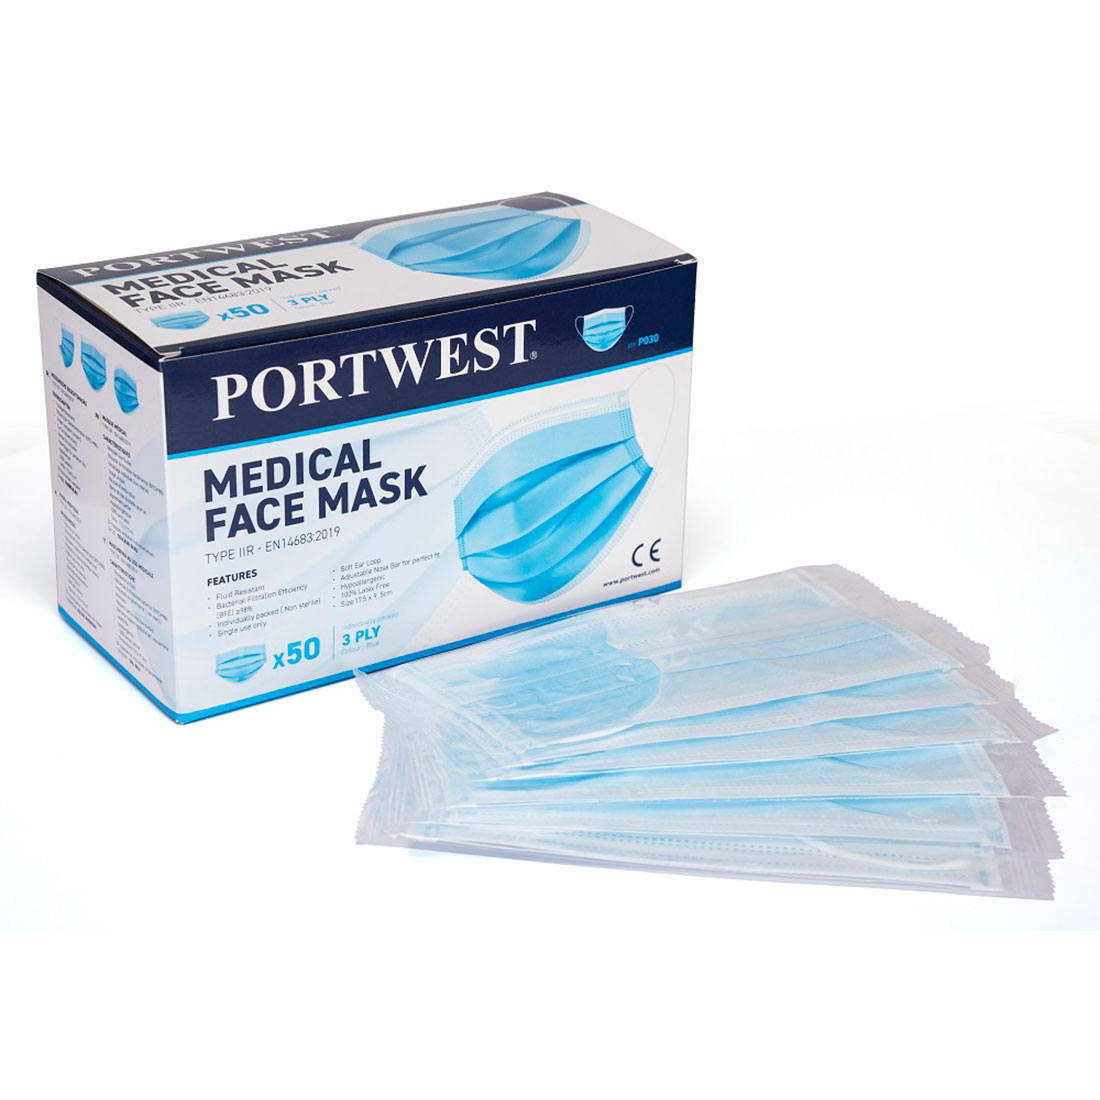 Medical Mask Type IIR Blue (Box of 50 - Individually Wrapped)